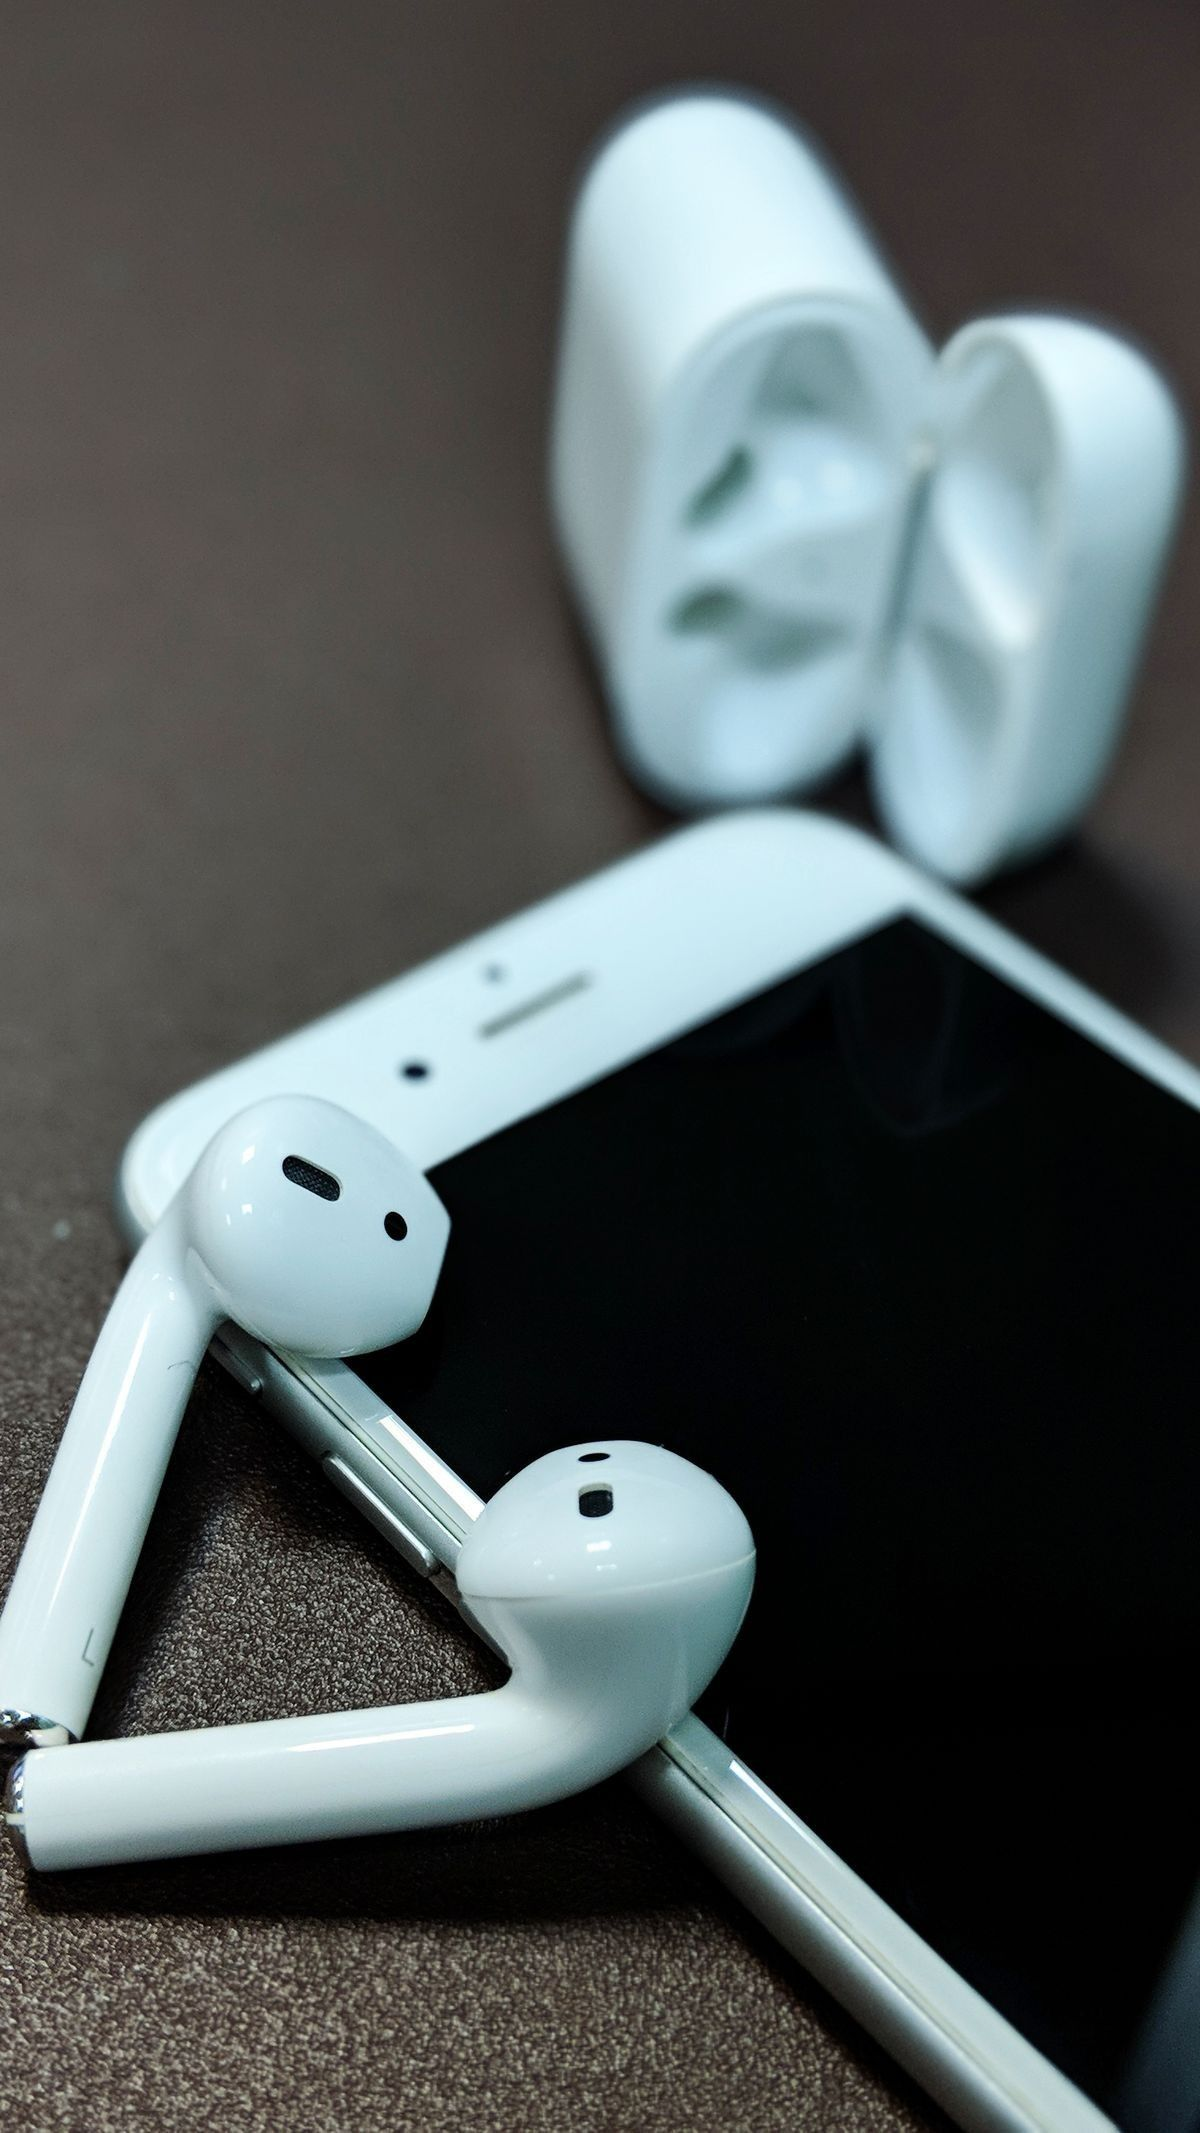 Airpods Or Alternative Iphone Accessories Wireless Earbuds Earbuds